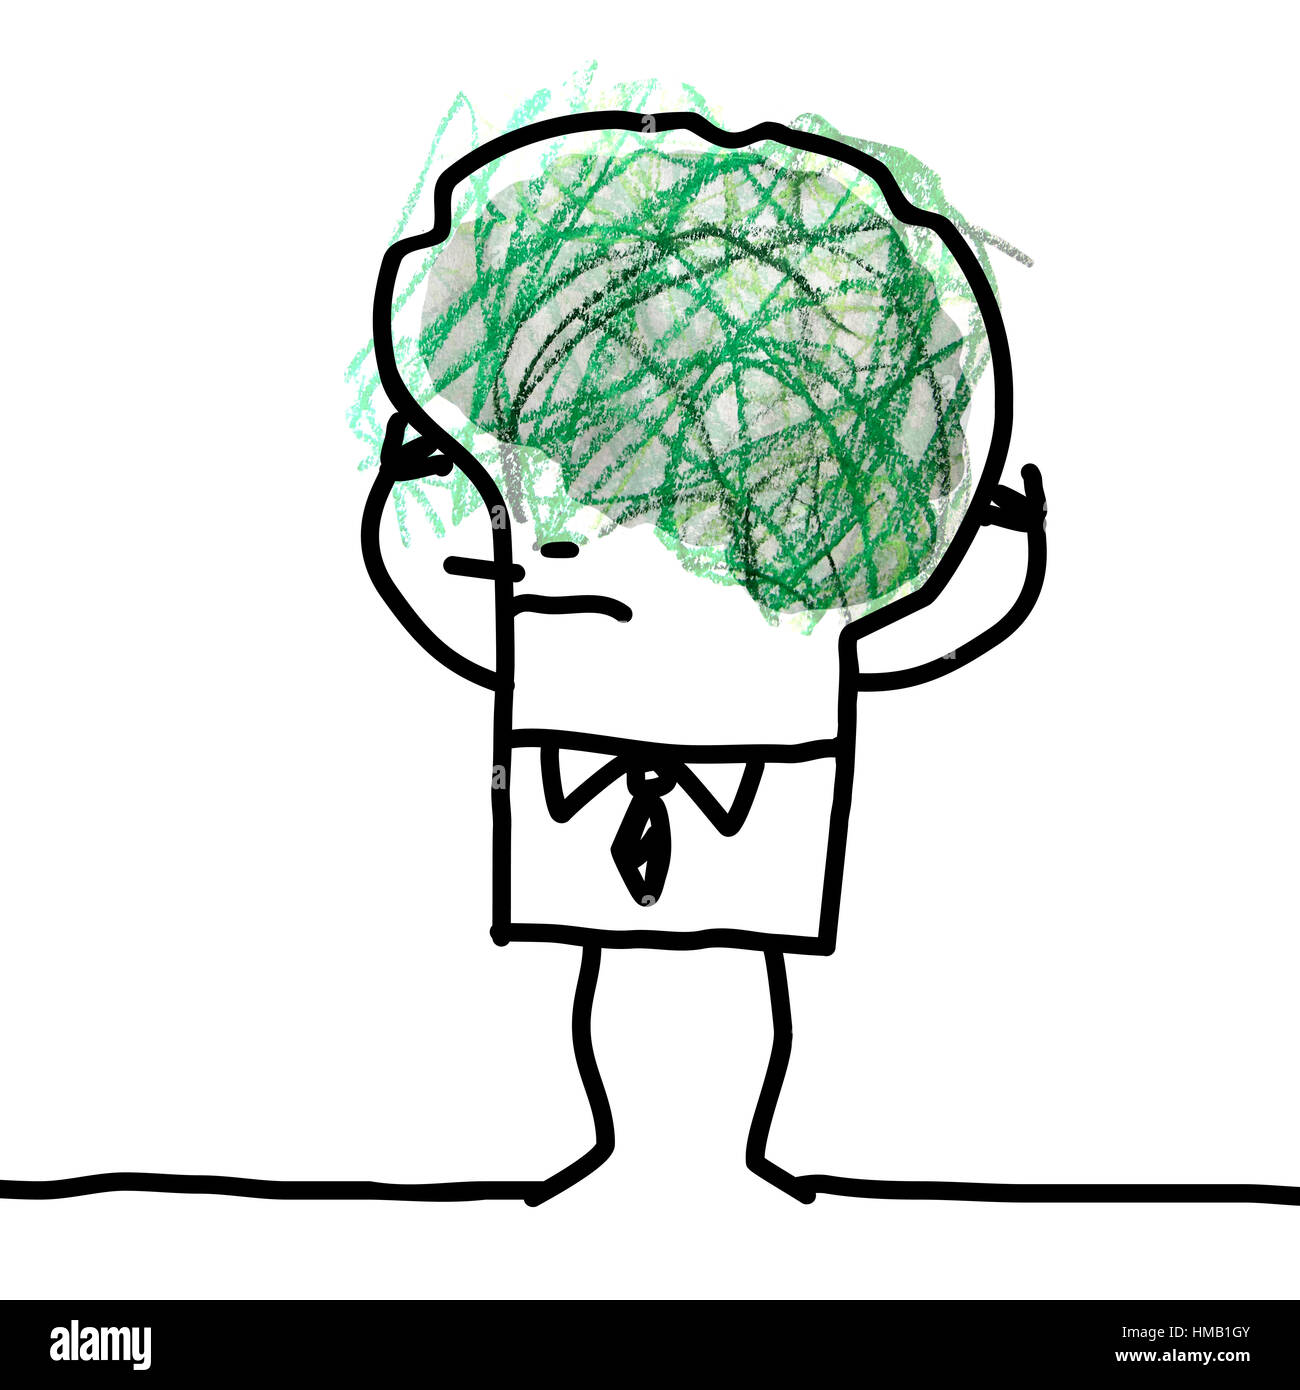 Cartoon big brain man doodle and confusion stock photo 133008427 cartoon big brain man doodle and confusion thecheapjerseys Gallery